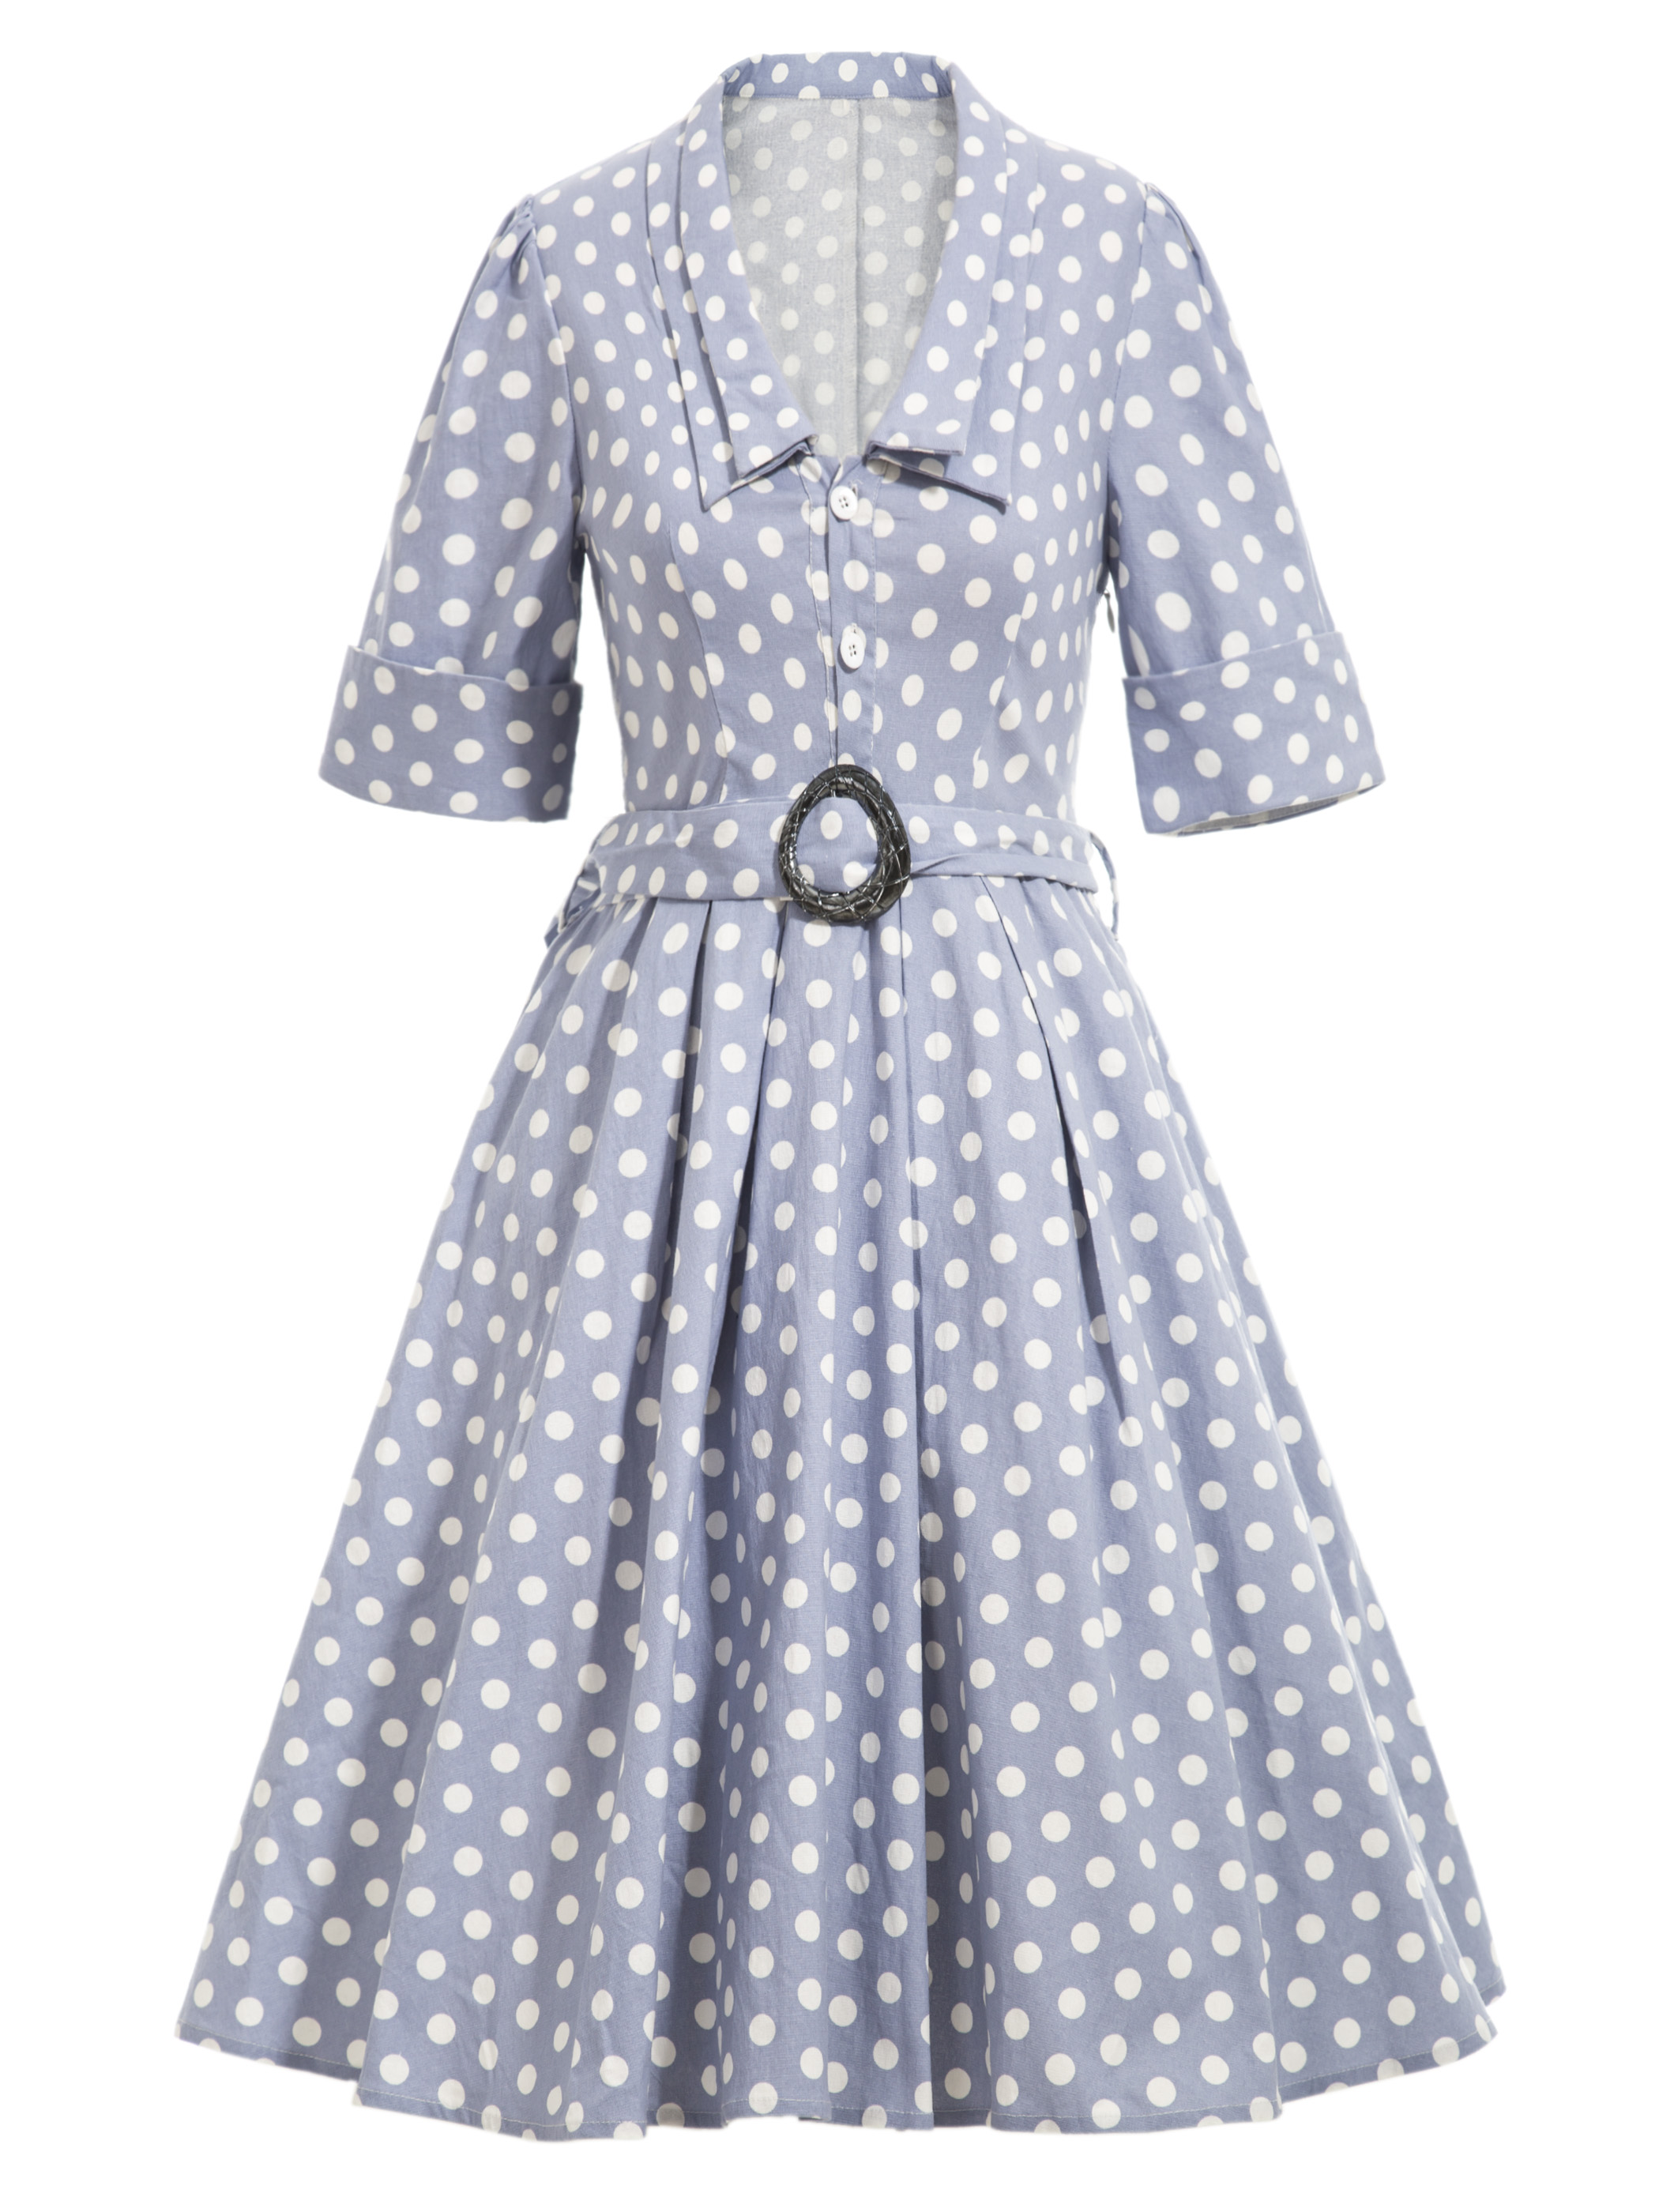 f656dc5fb9f Women Polka Dots Dress Shrug Sleeve Light Blue Belt Slim A-line Dress Short  Sleeve Turn Down Collar Lady Shirts Vintage Dress